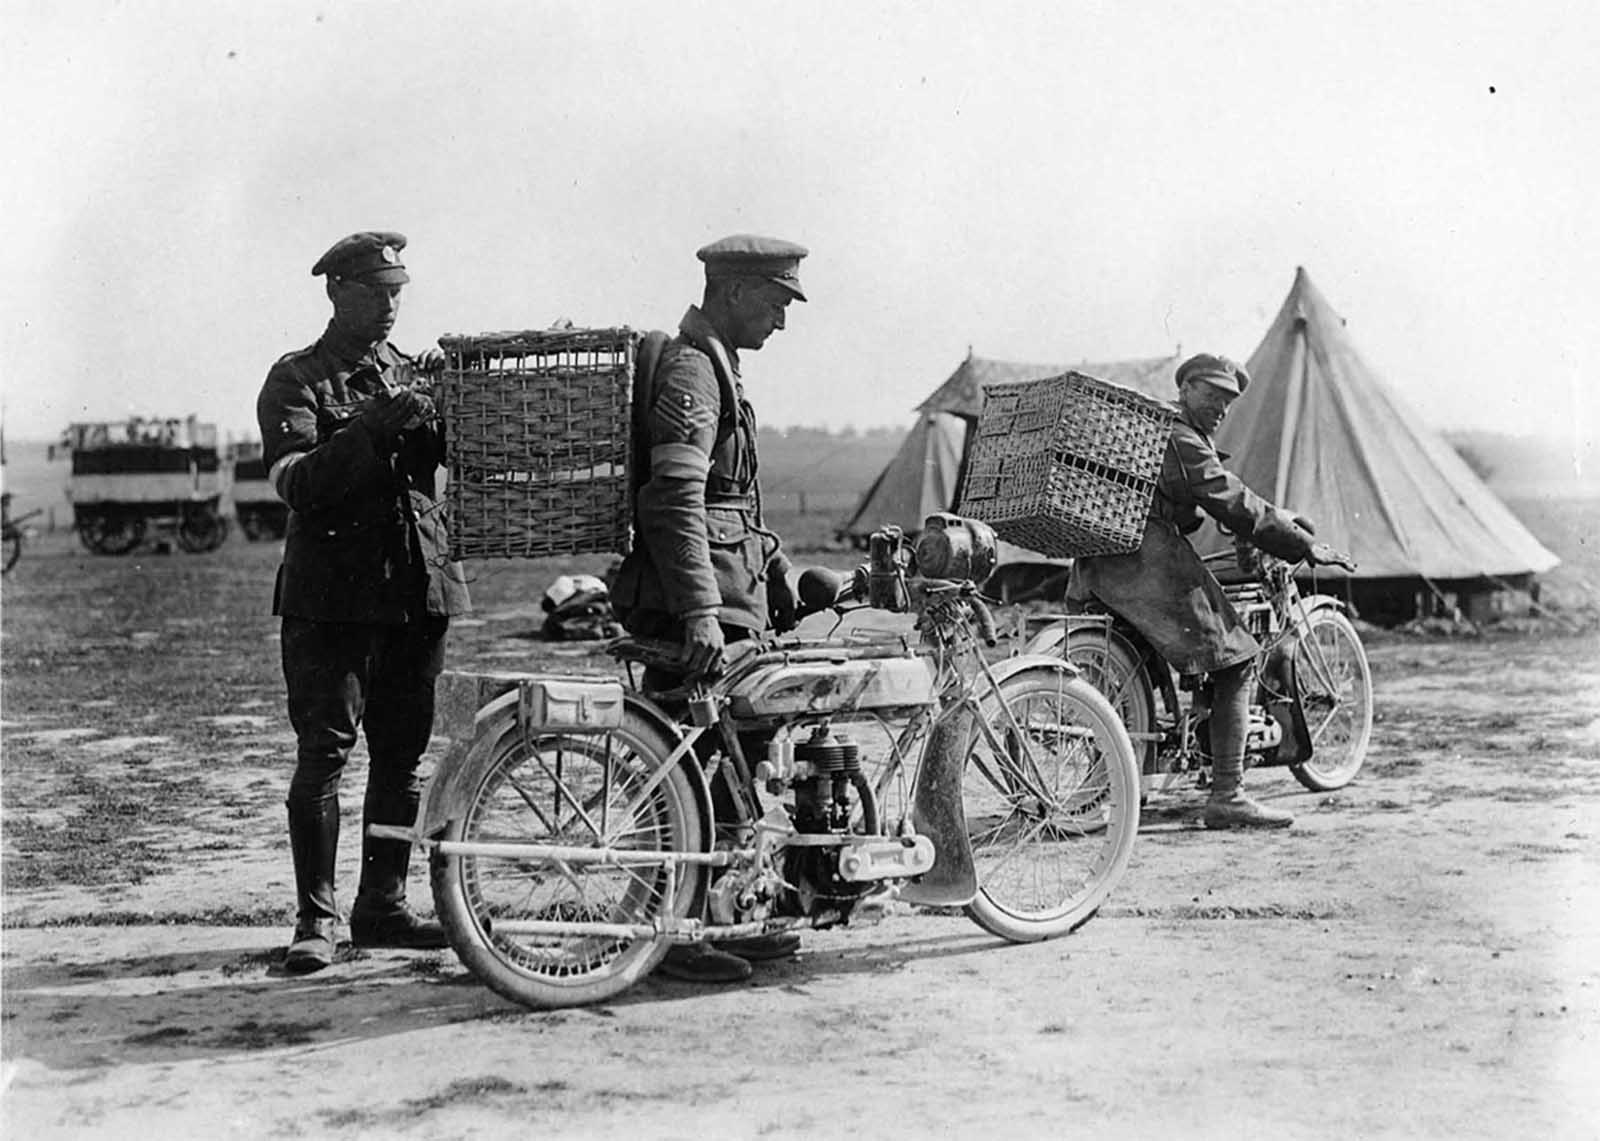 Two soldiers with motorbikes, each with a wicker basket strapped to his back. A third man is putting a pigeon in one of the baskets. In the background there are two mobile pigeon lofts and a number of tents. The soldier in the middle has the grenade badge of the Royal Engineers over the chevrons which show he is a sergeant.